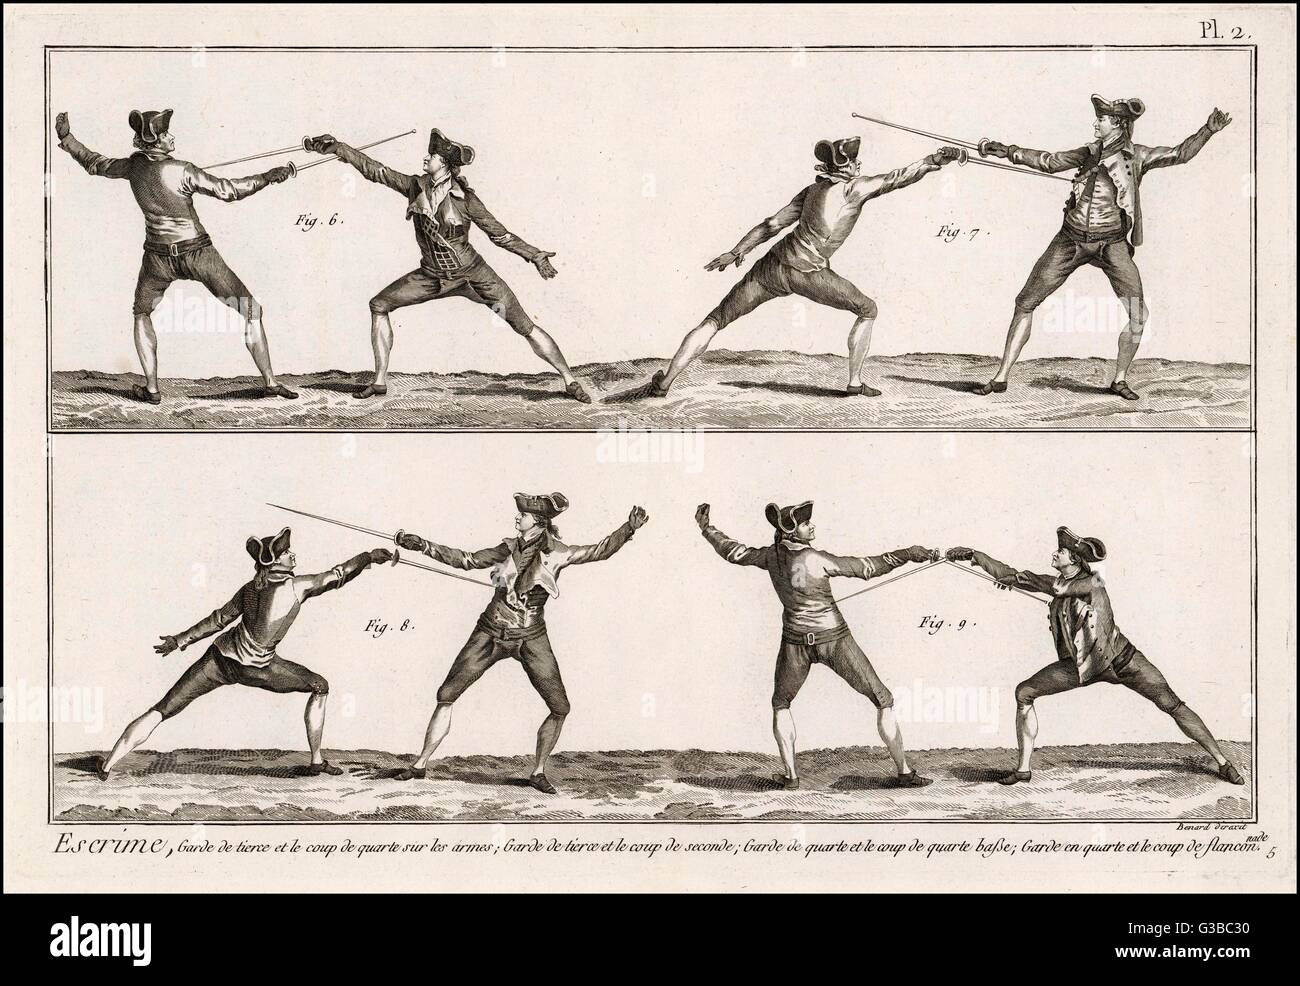 Instruction in the art of  fencing.  2 of 9       Date: Late 18th century - Stock Image